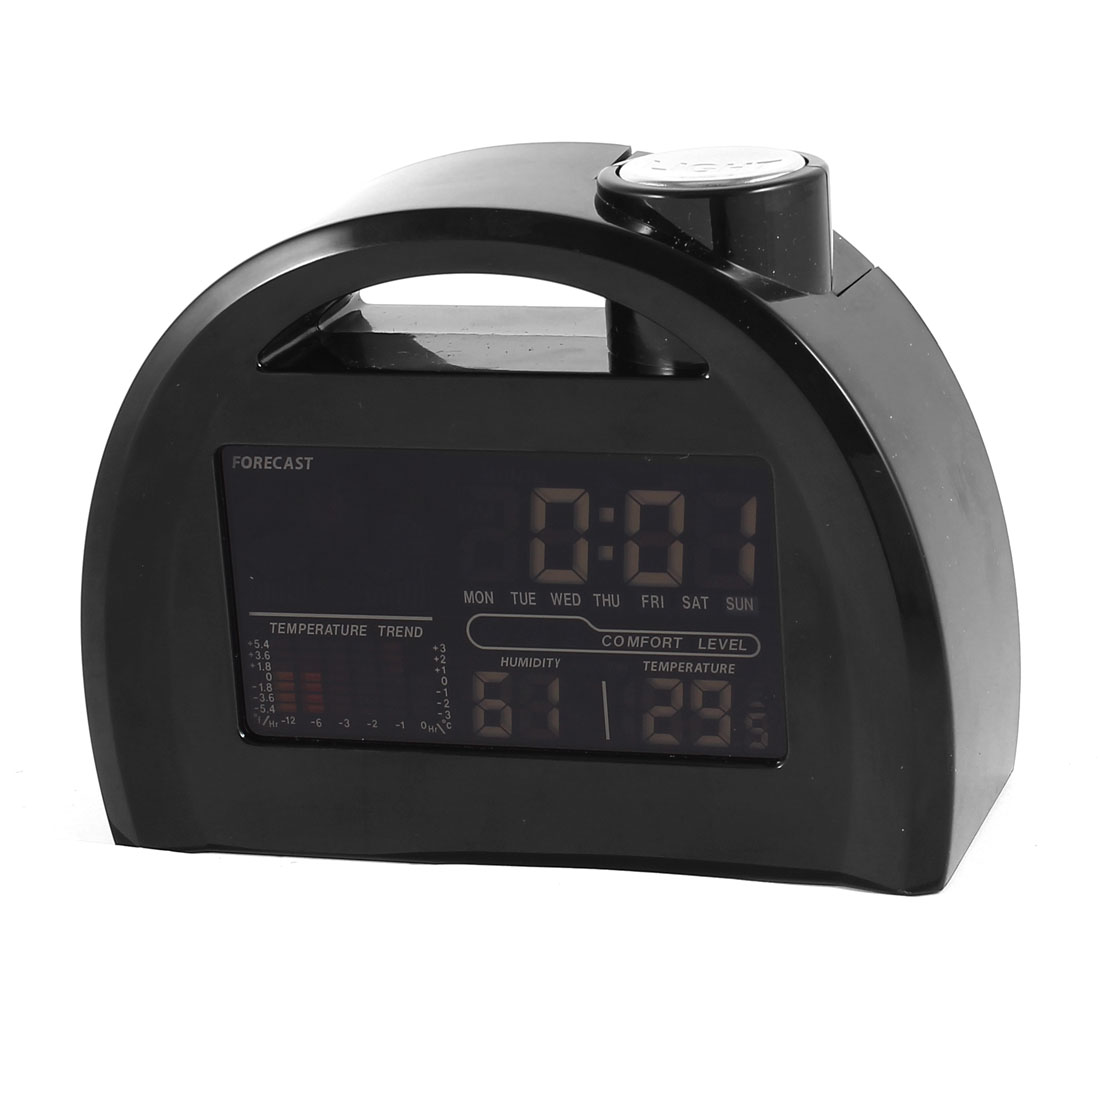 Multifunction Digital LCD Projection Clock Alarm Calendar Weather Forecast Station